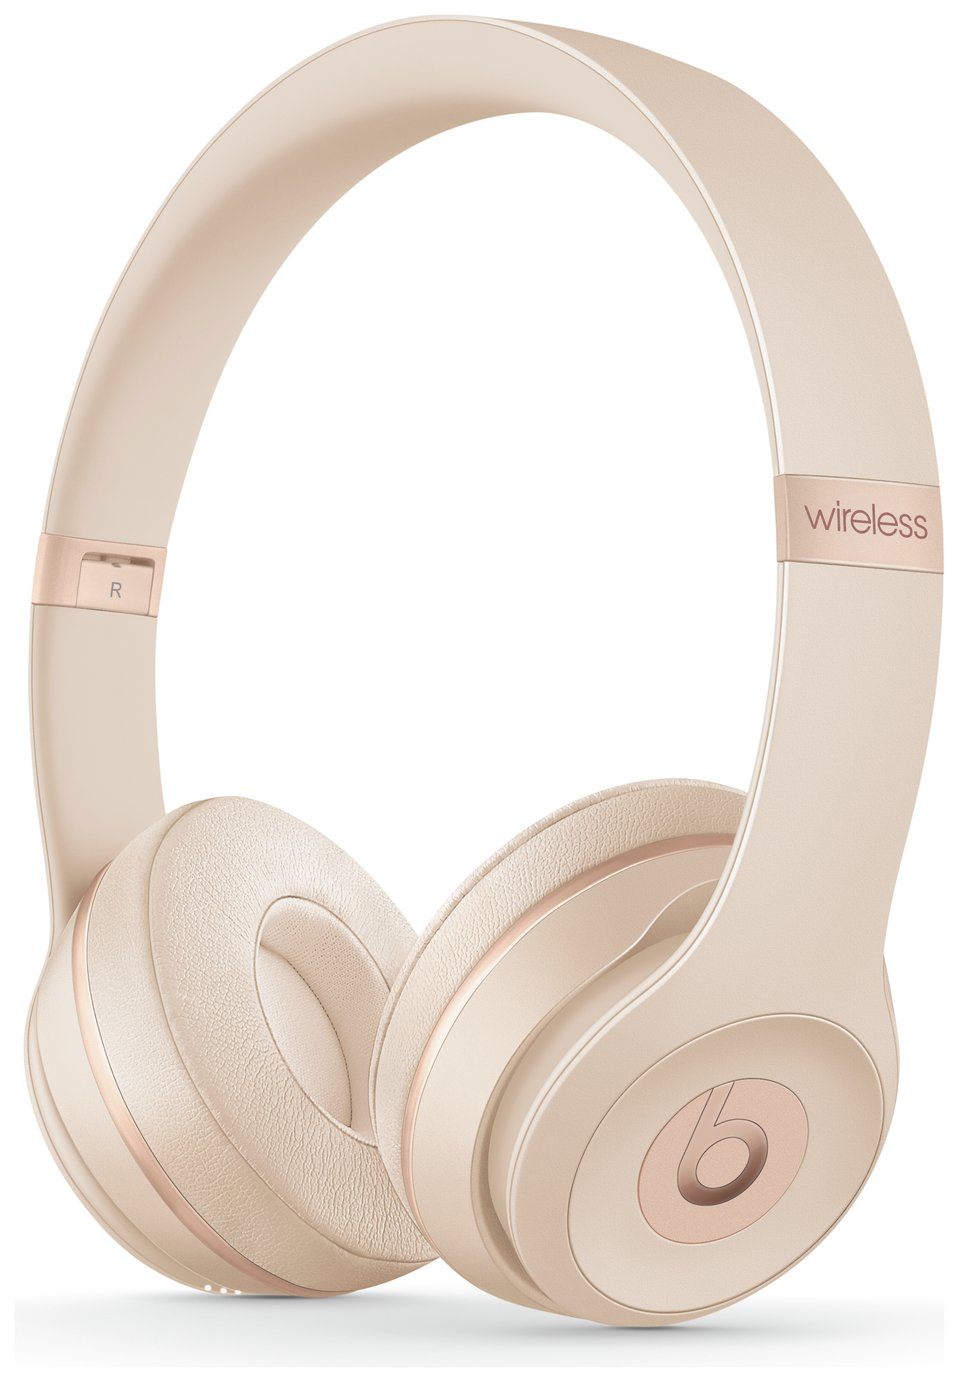 Beats by Dre Solo 3 On-Ear Wireless Headphones- Satin Gold